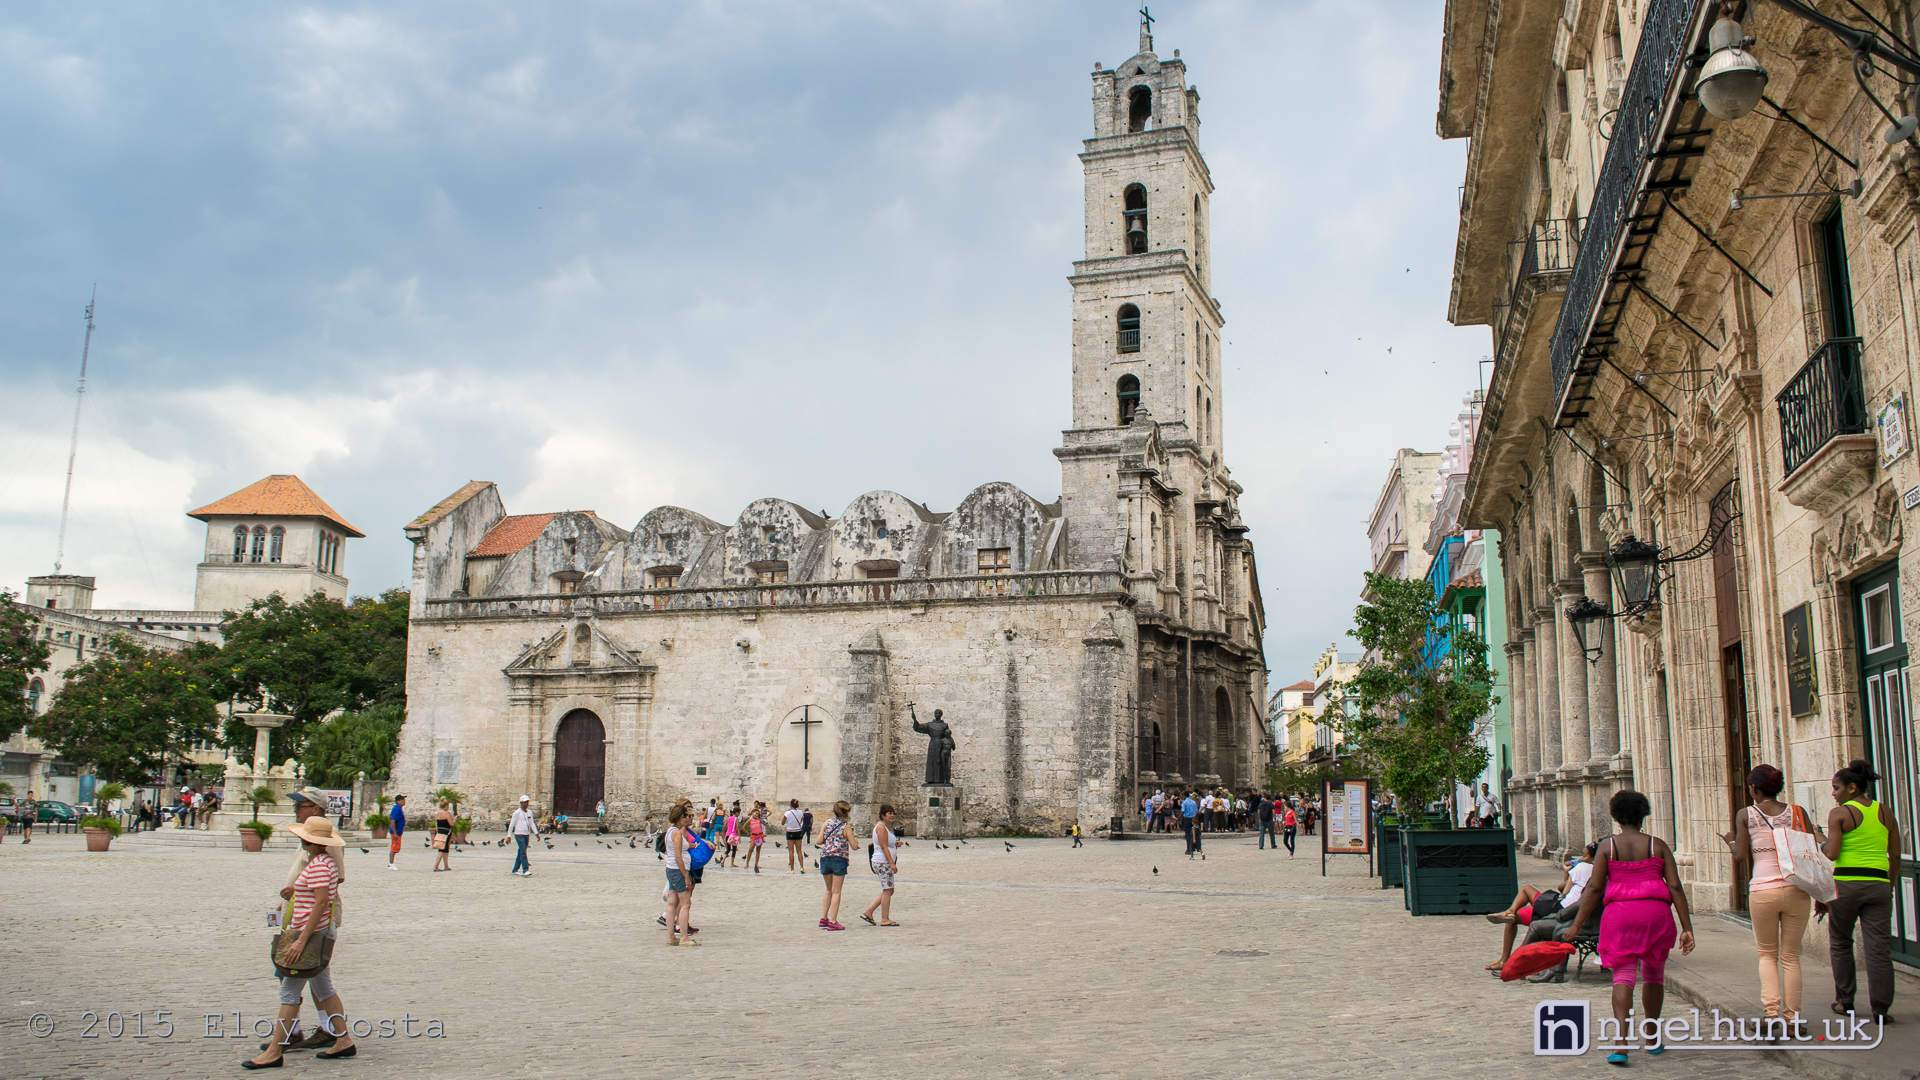 San Francisco de Asís Square at Old Havana